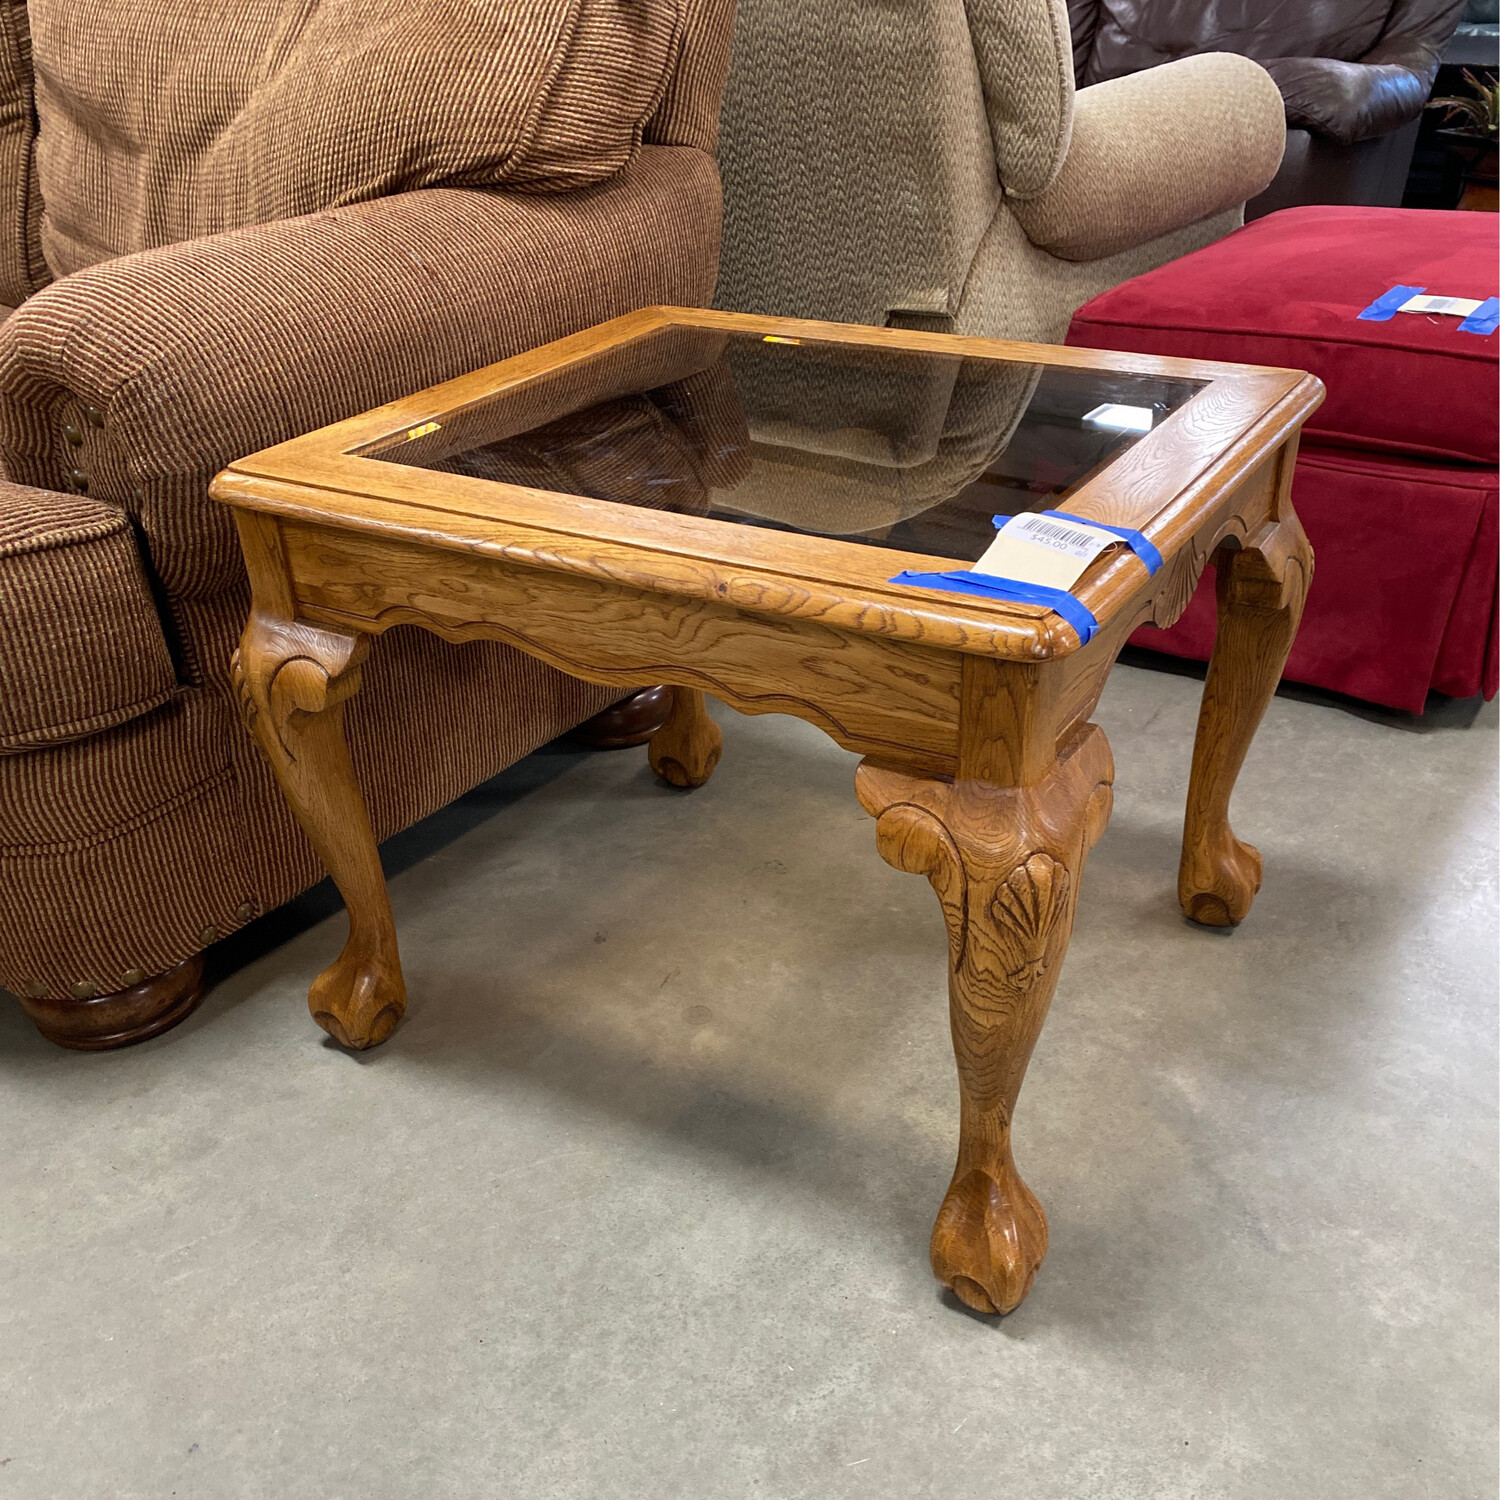 2 ORNATED ENDTABLE WITH GLASS INSERT SET